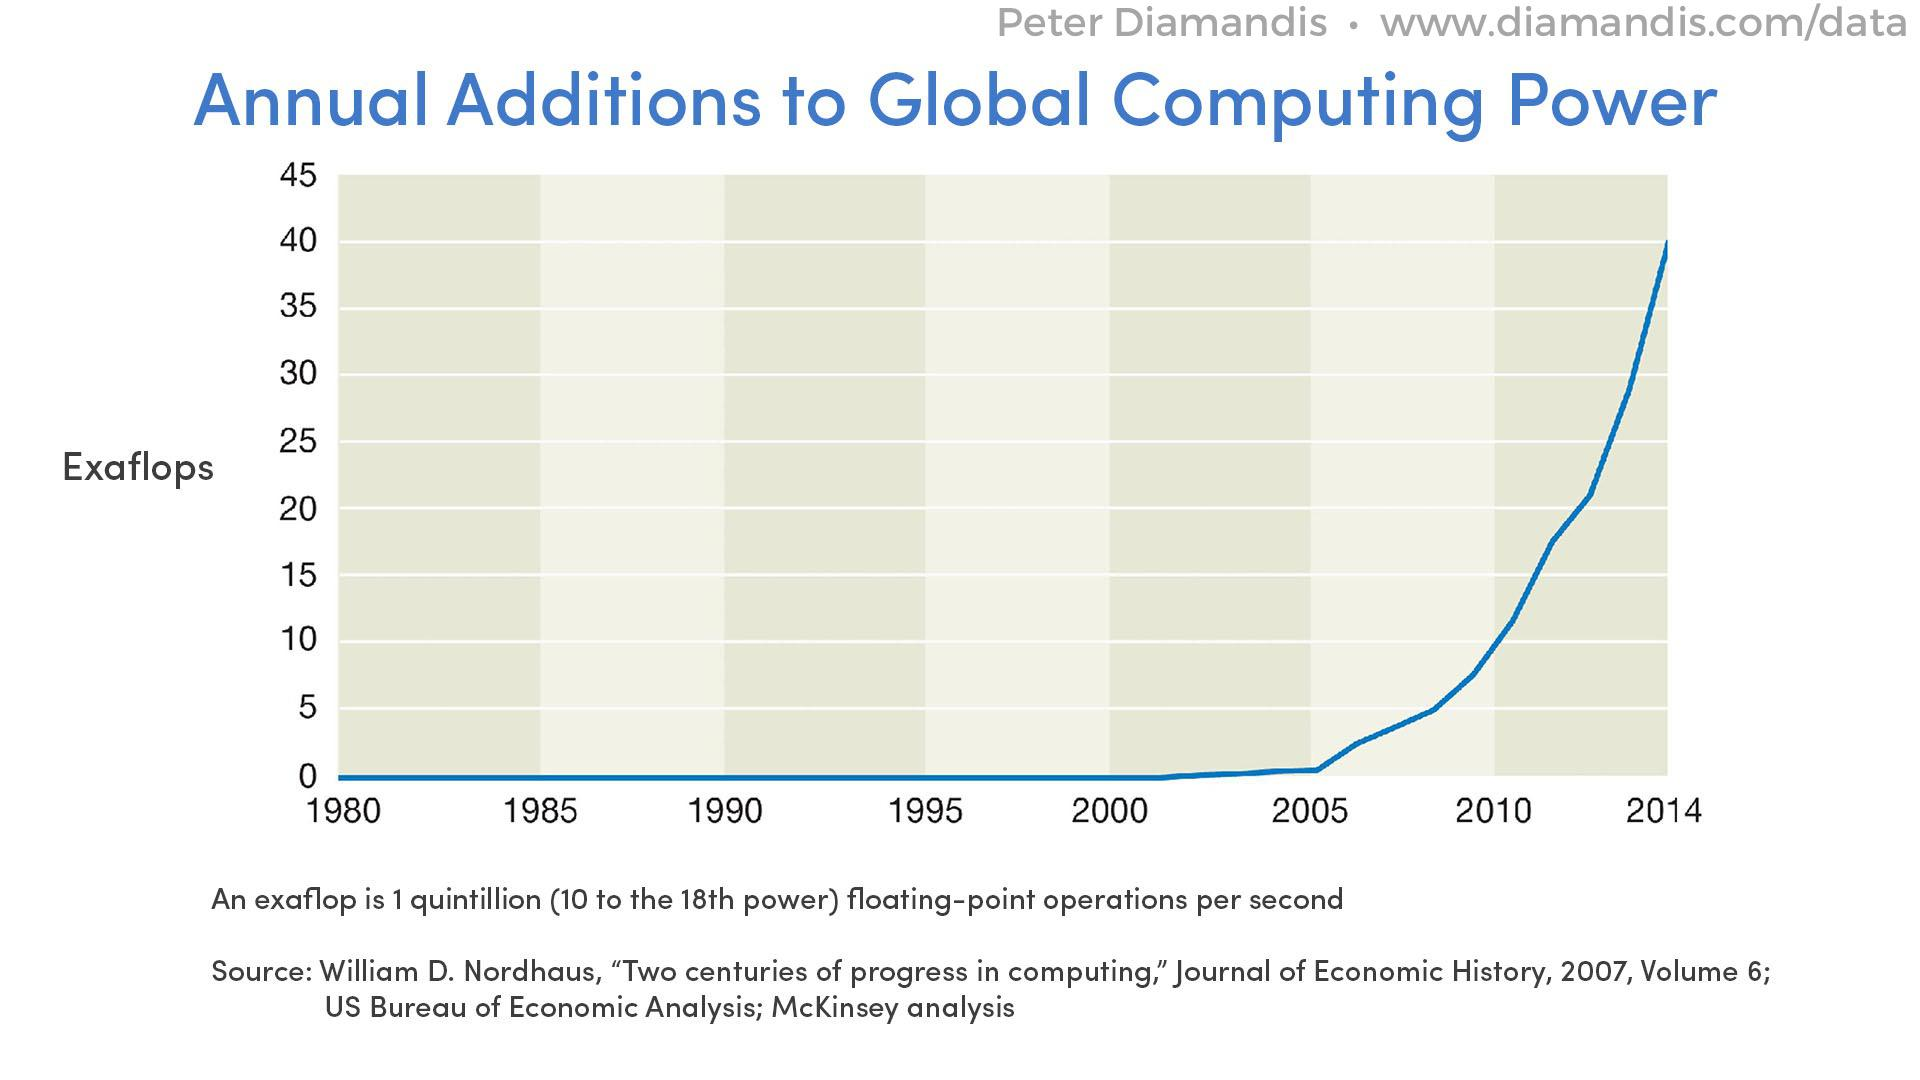 Annual-Additions-to-Global-Computing-Power